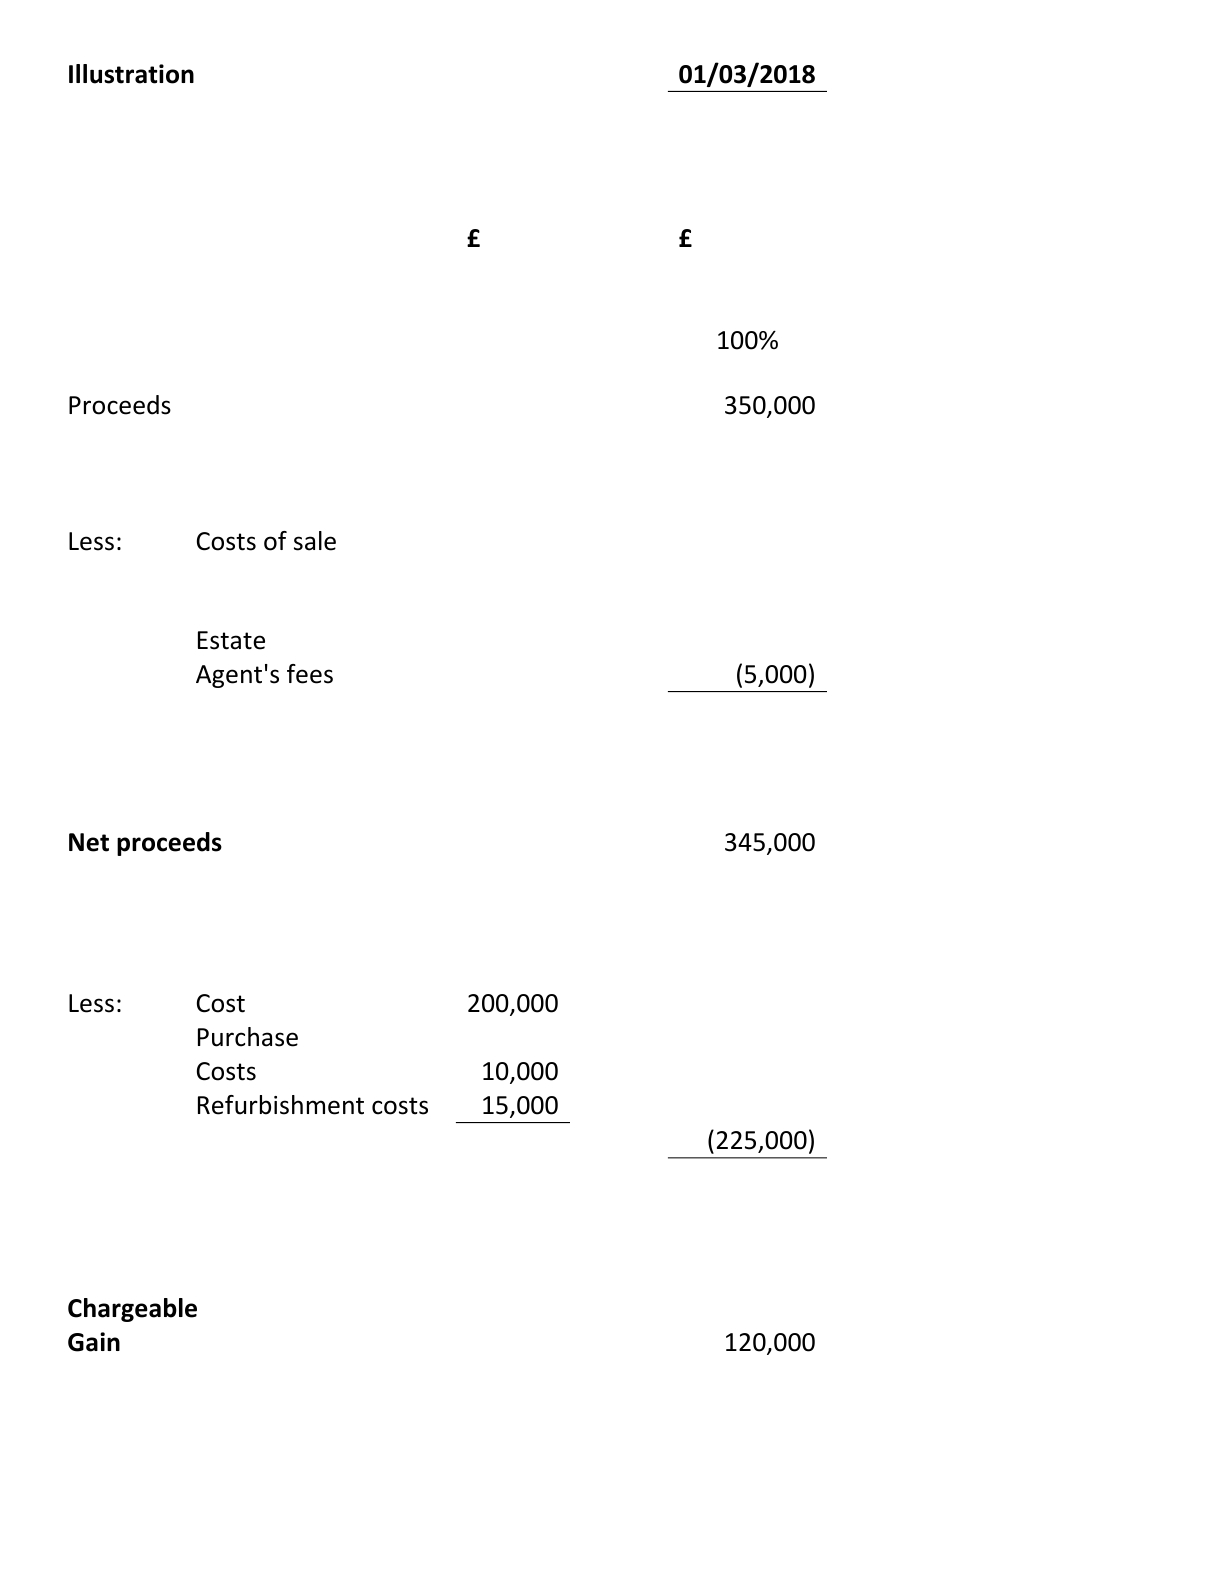 Section 24 and Capital Gains Tax Illustration 1